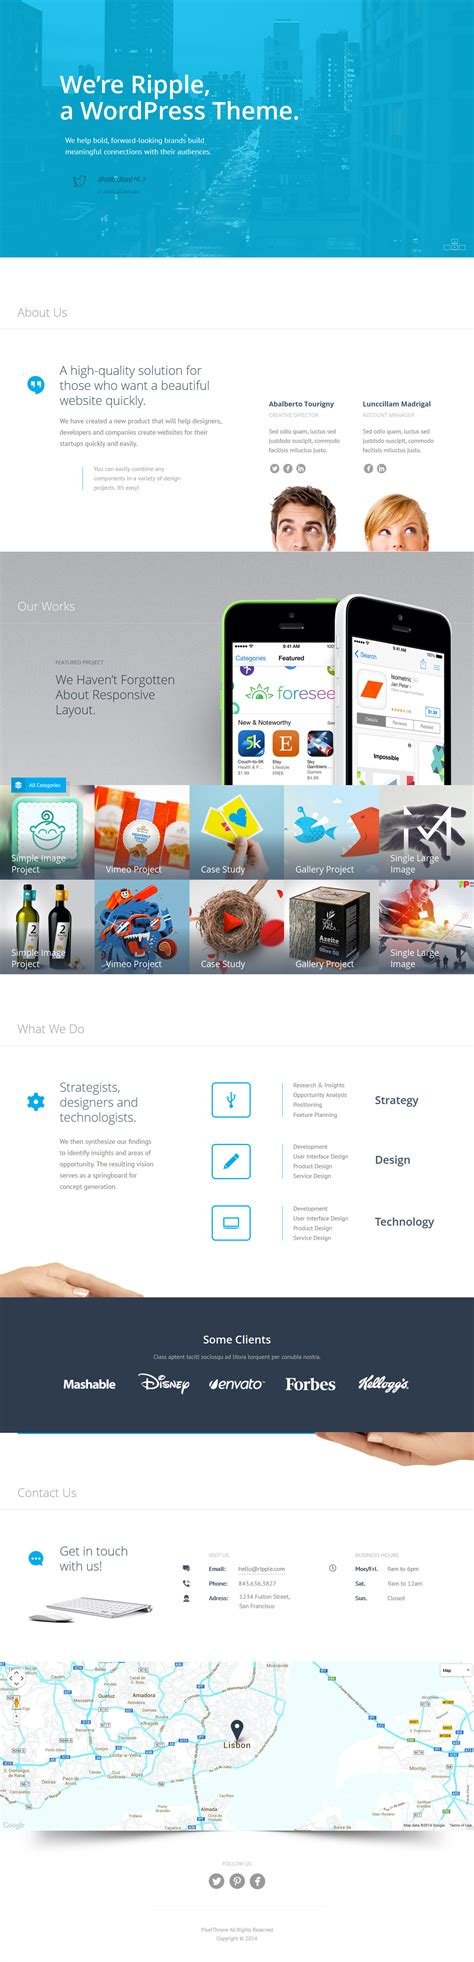 unique wordpress themes free download ripple a premium creative wordpress theme free download